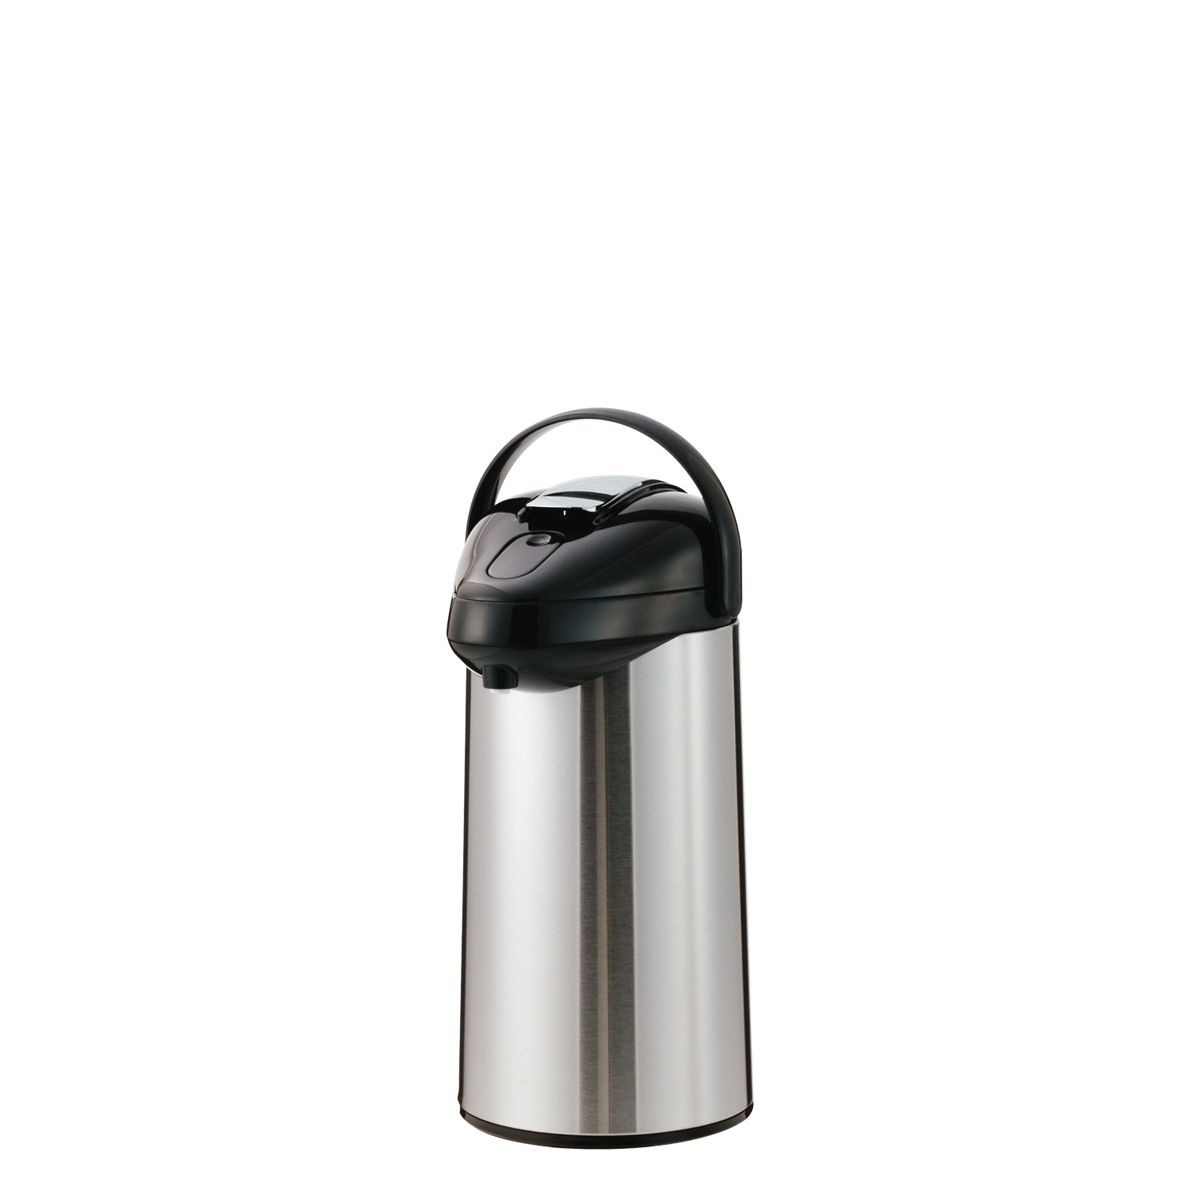 Service Ideas SSAL250 Stainless and Black Airpot with Interchangeable Lever Lids, 2.5 Liter